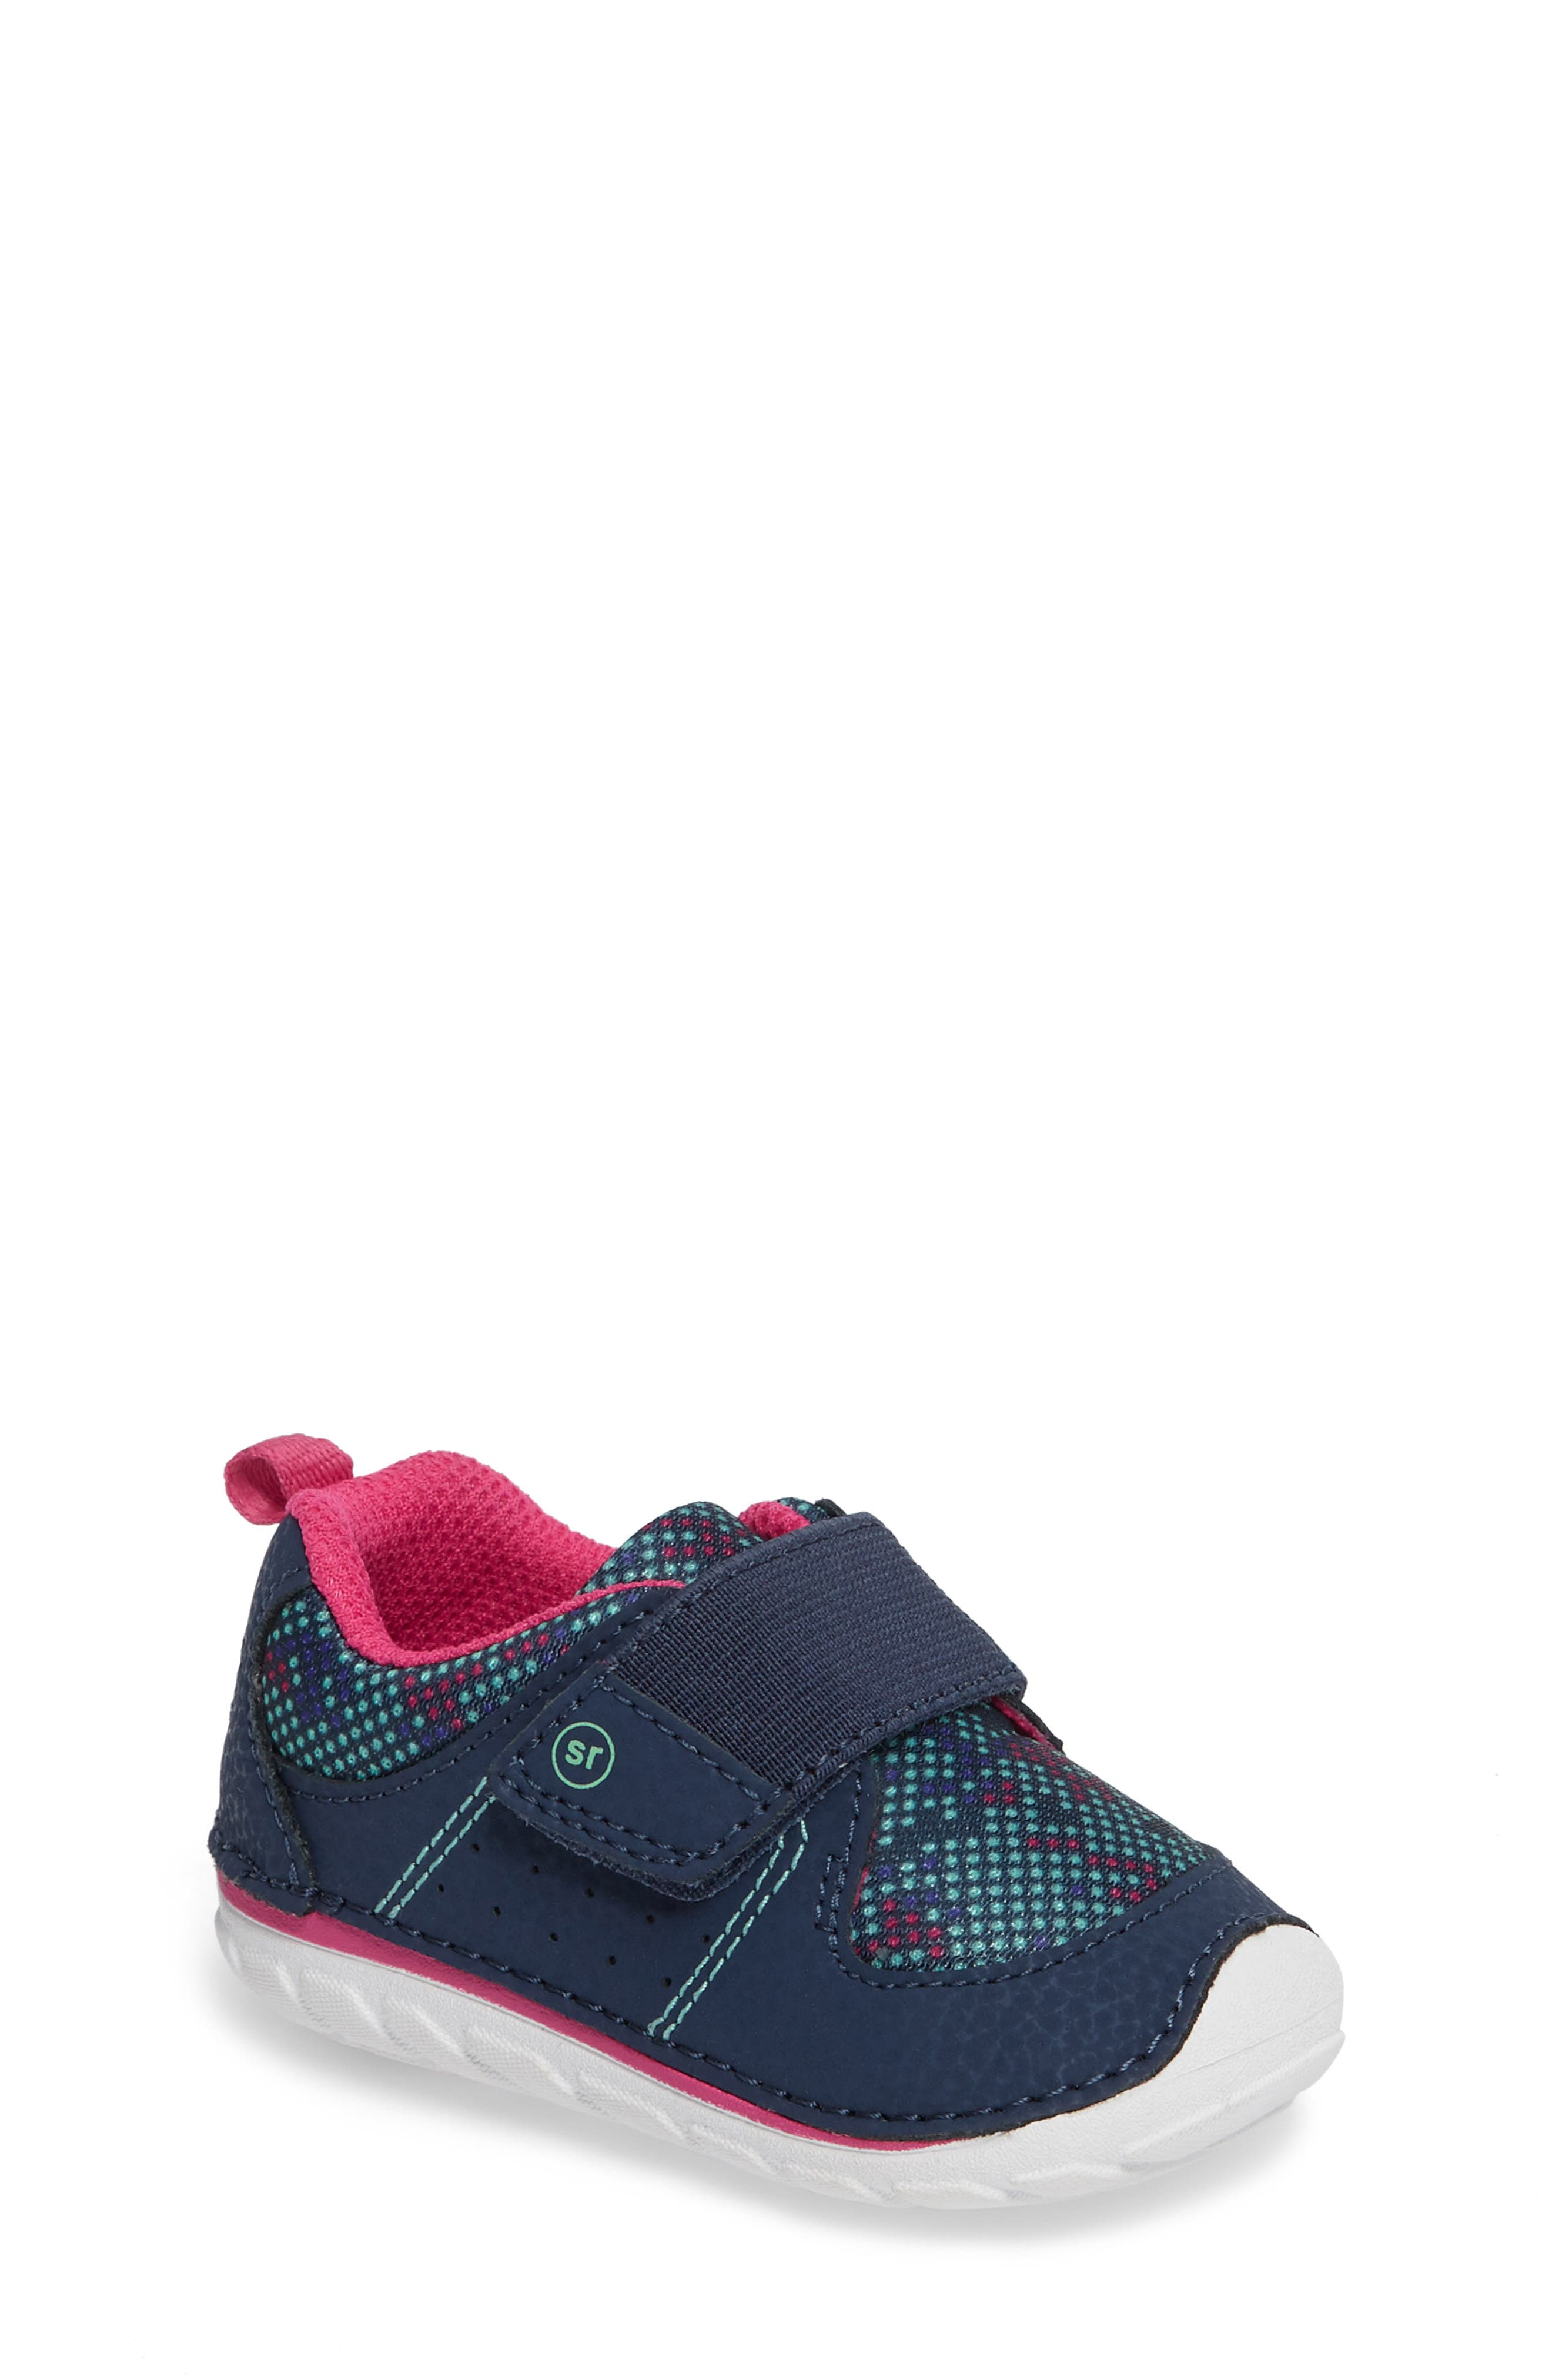 Soft Motion<sup>™</sup> Ripley Sneaker,                         Main,                         color, Navy